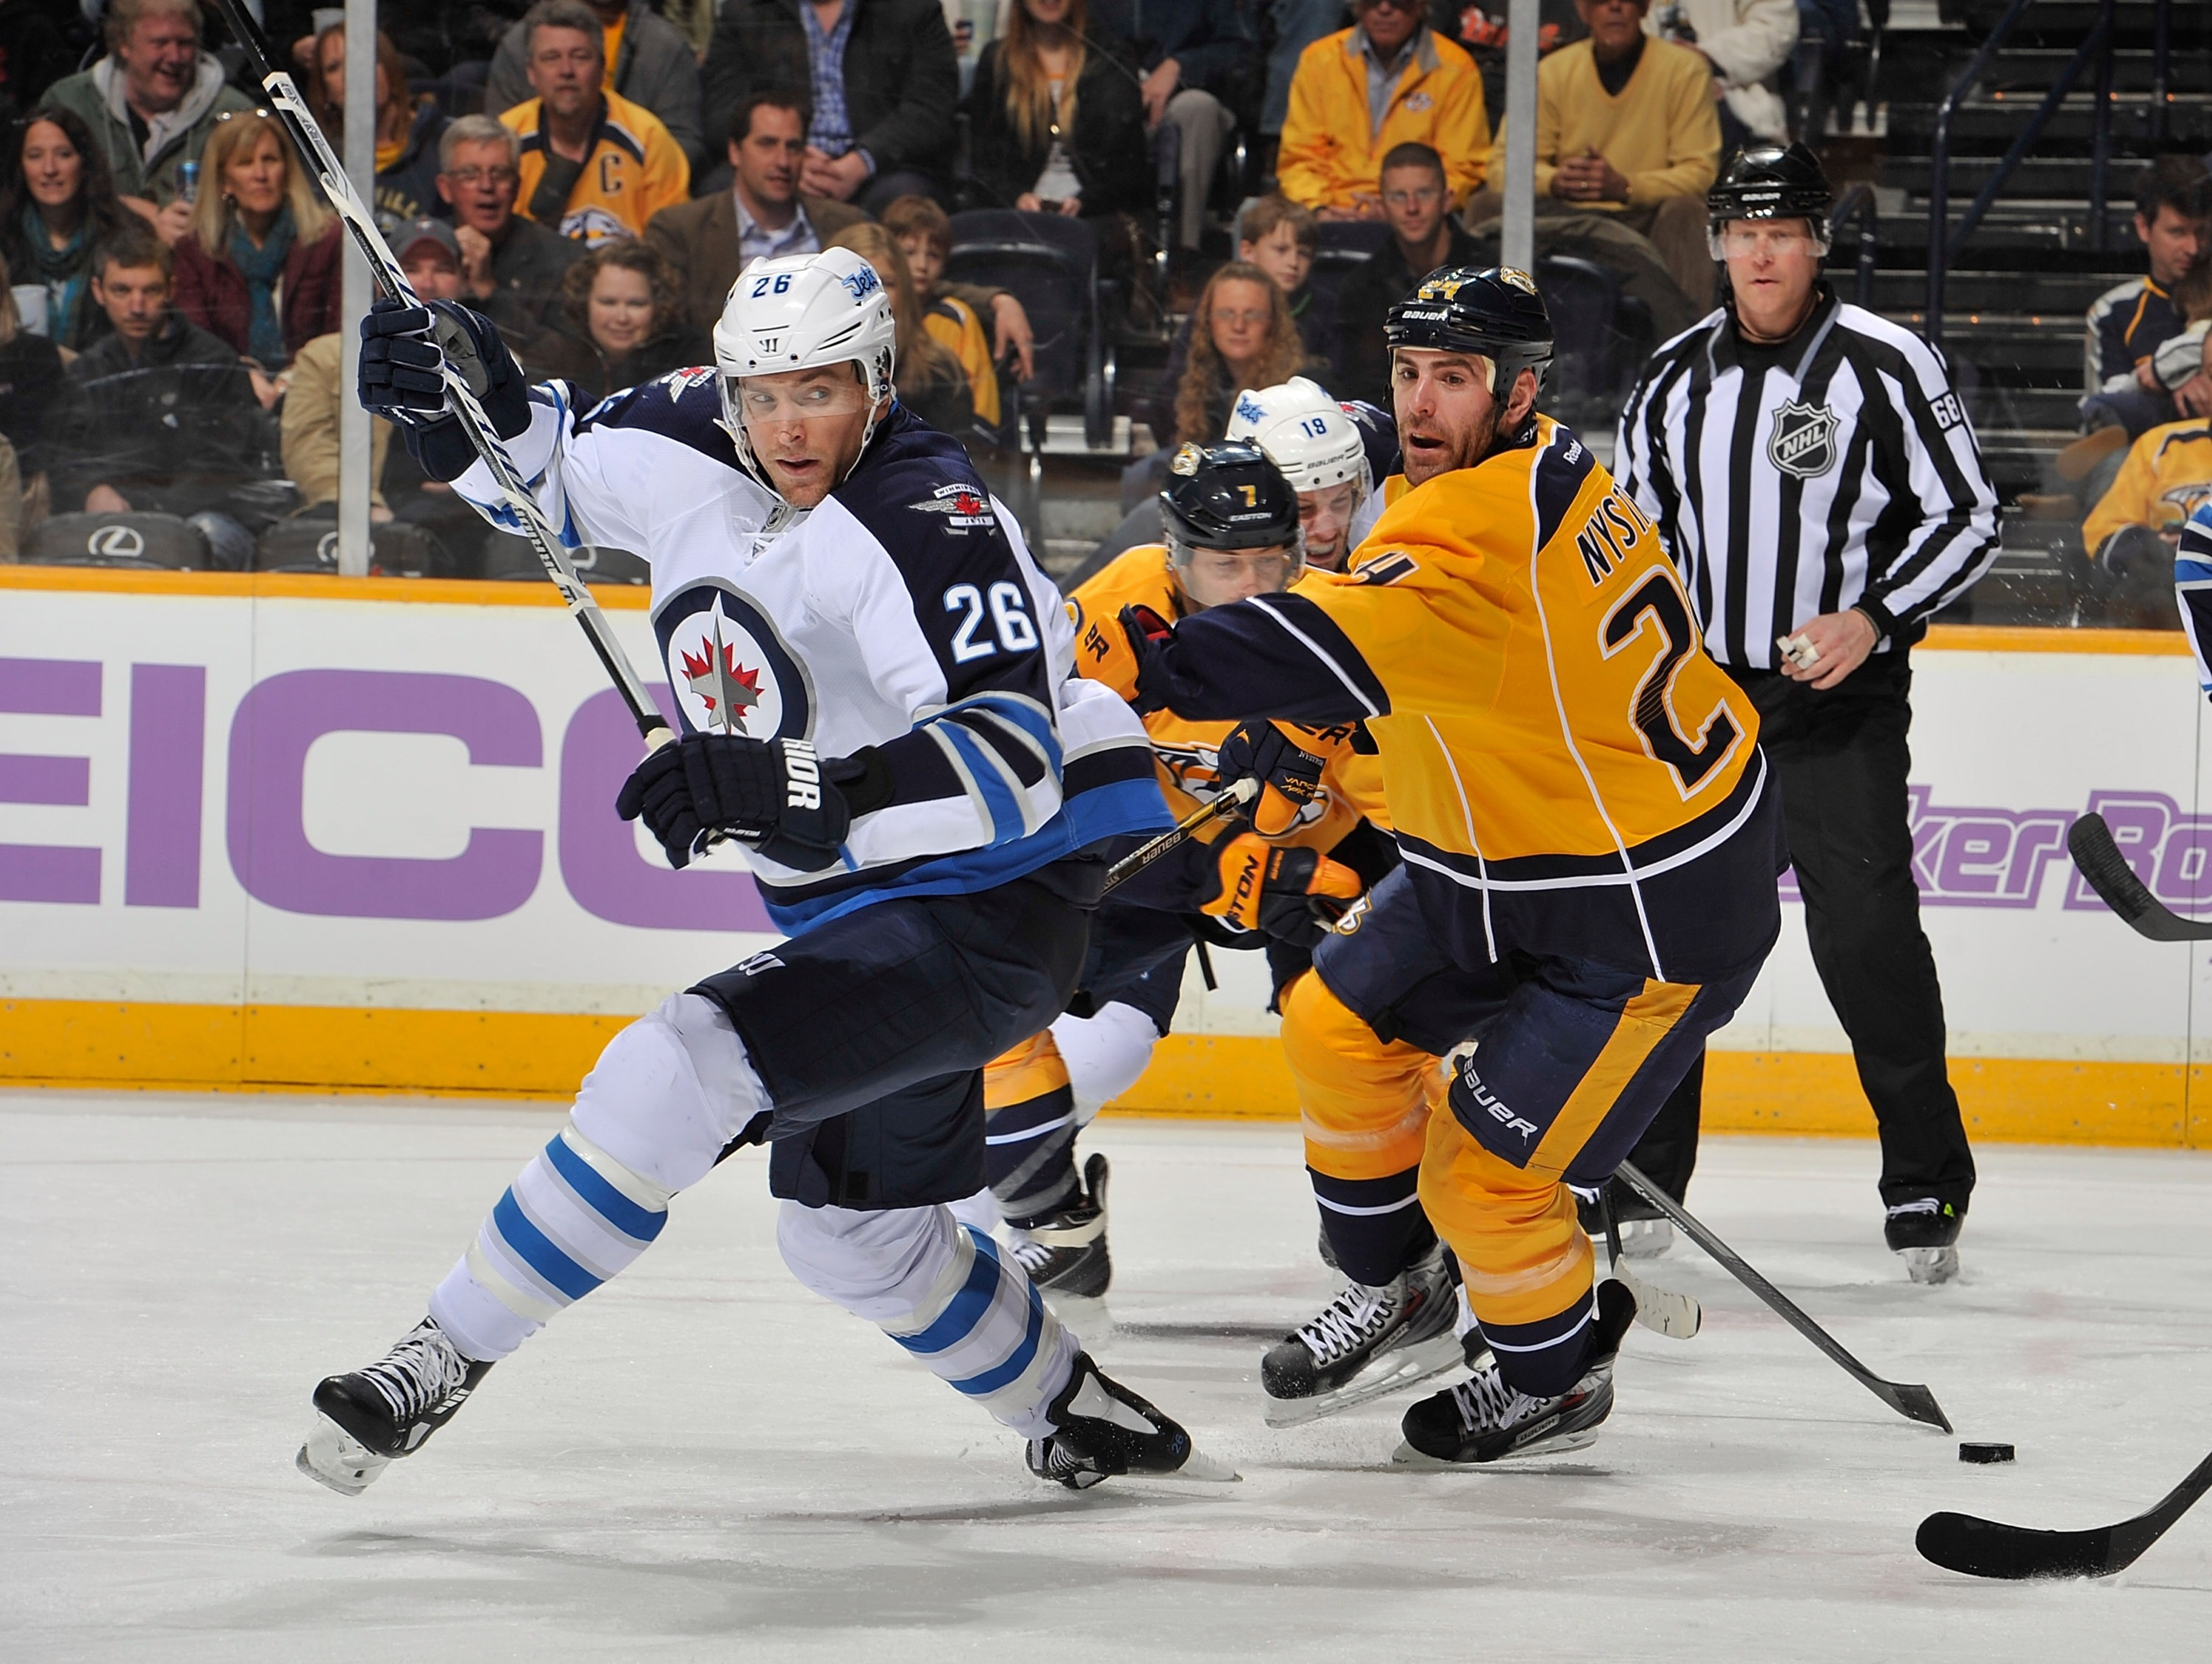 Blake Wheeler #26 of the Winnipeg Jets skates against Eric Nystrom #24 of the Nashville Predators at Bridgestone Arena on March 1, 2014 in Nashville, Tennessee. (Photo by Frederick Breedon/Getty Images)